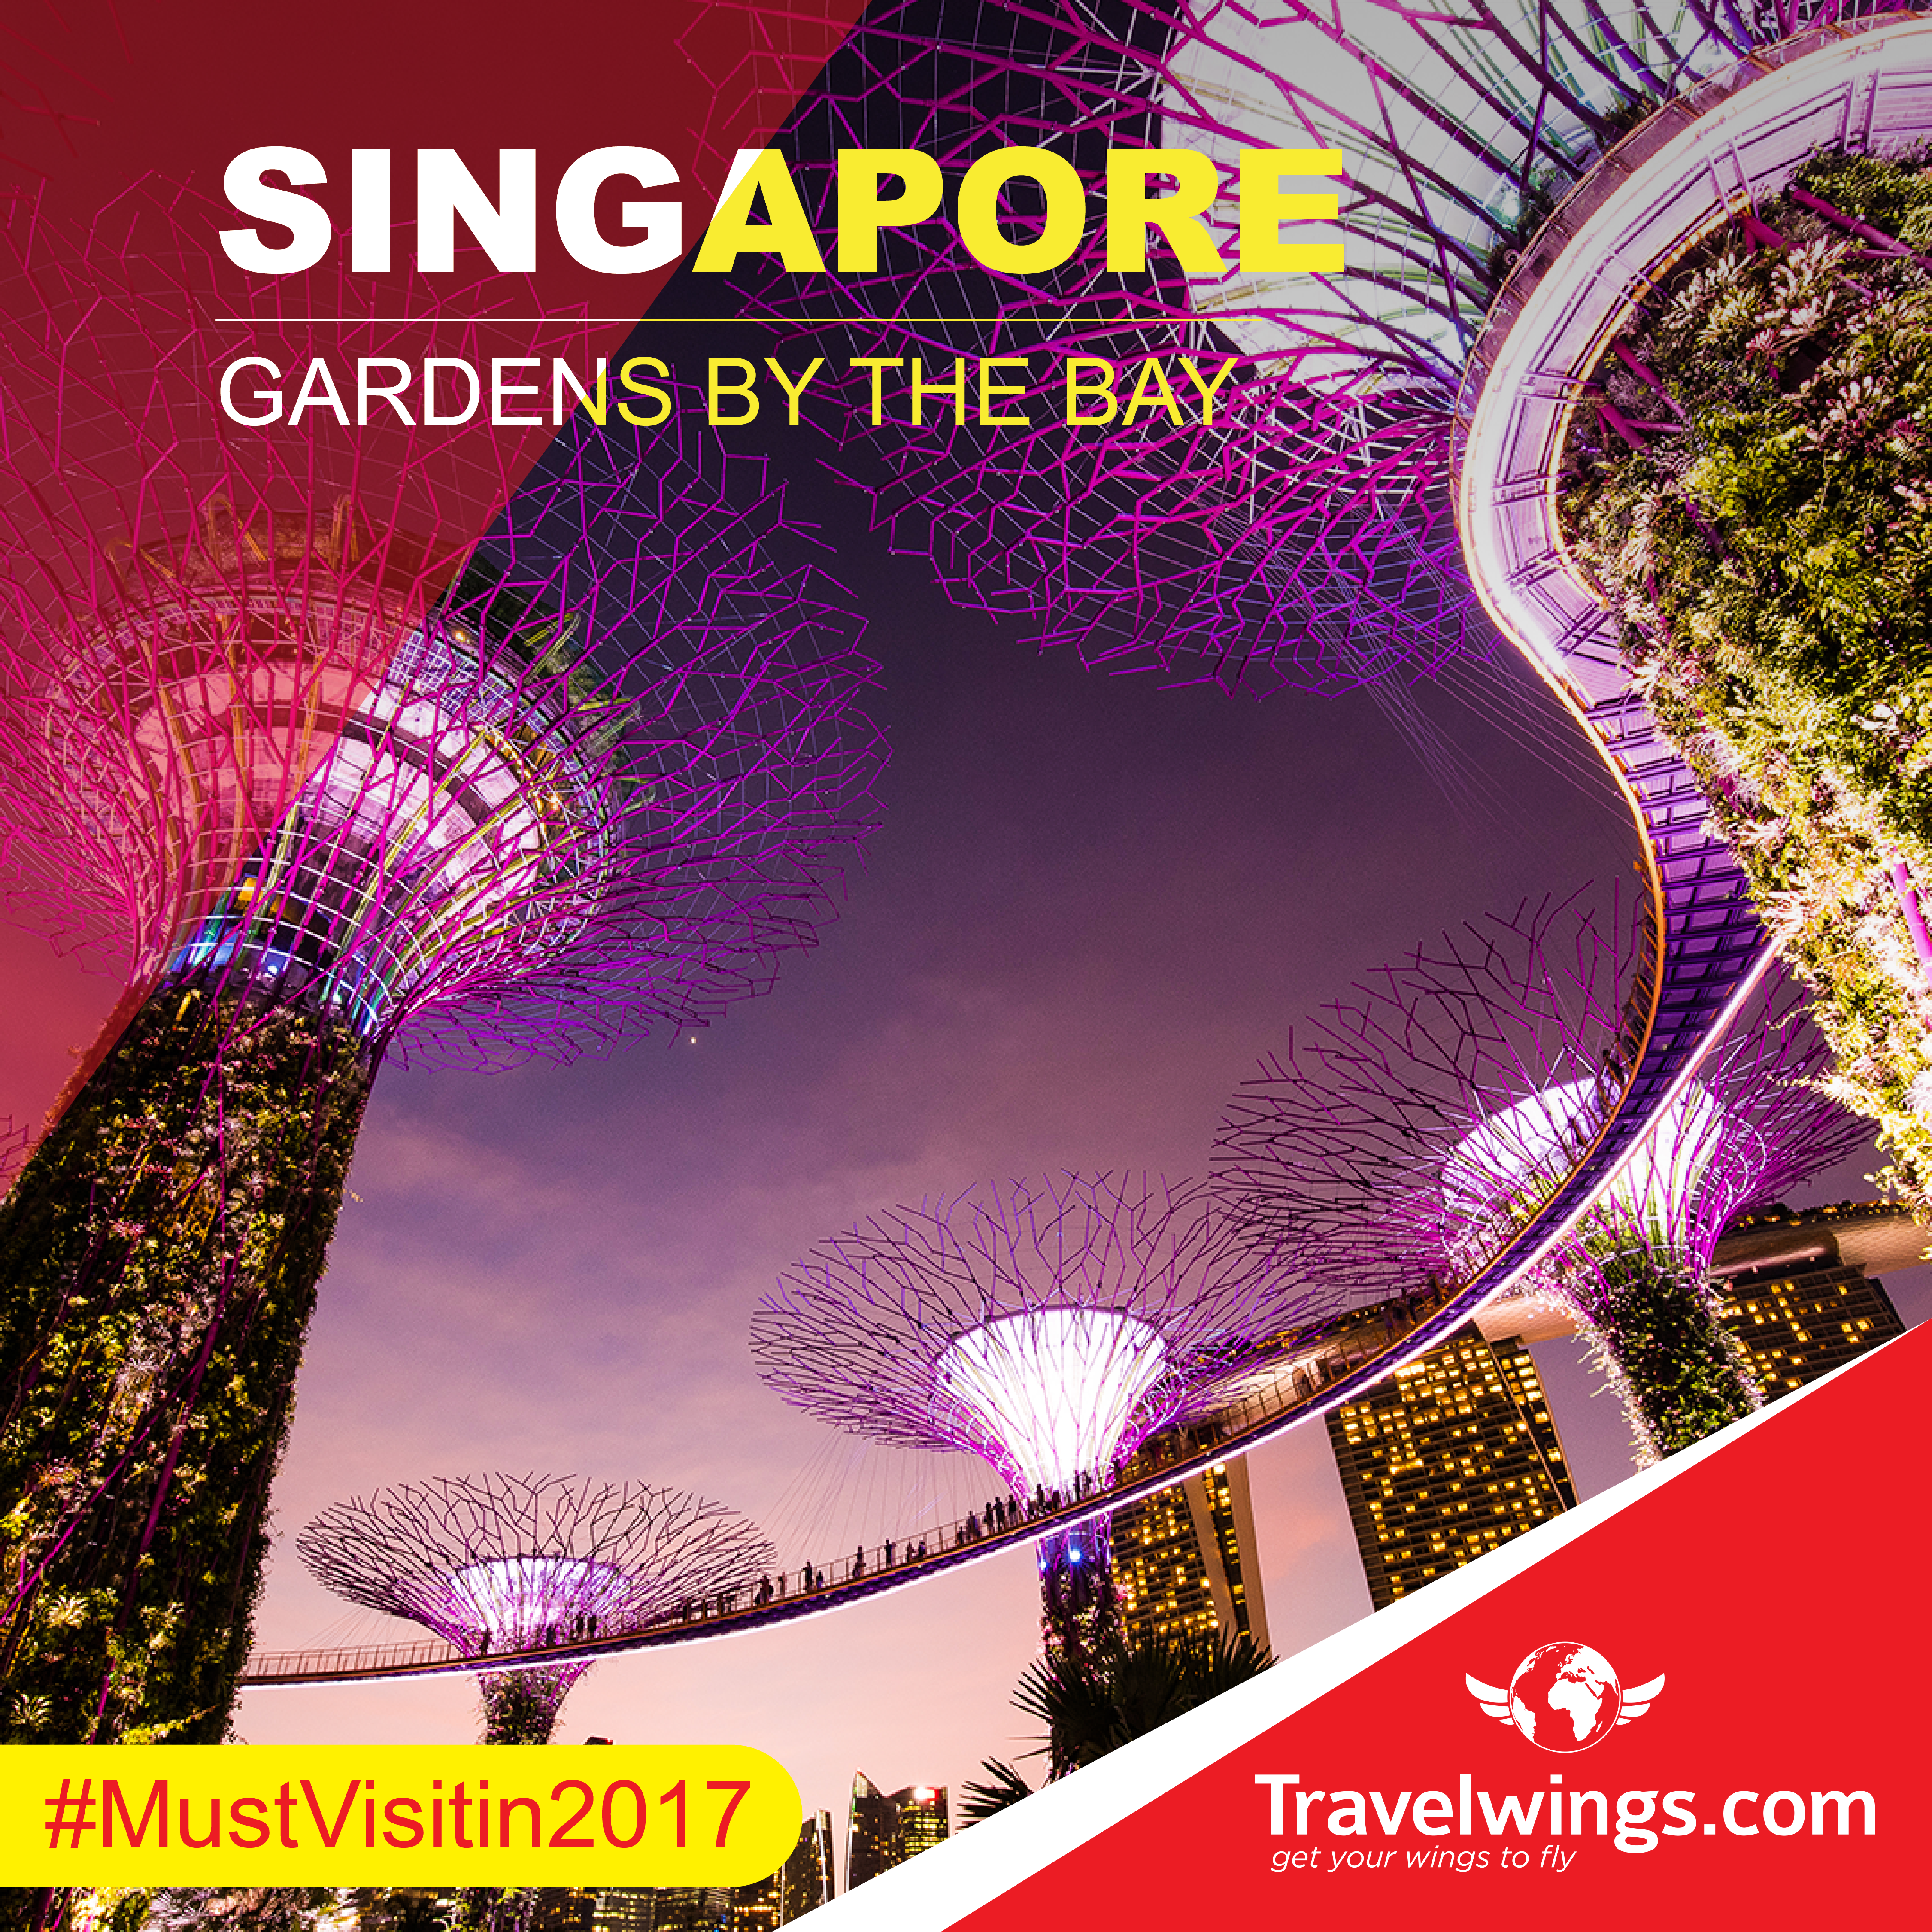 59e662c443f32124fbabb4a1ae508a71 - Fun Facts About Gardens By The Bay